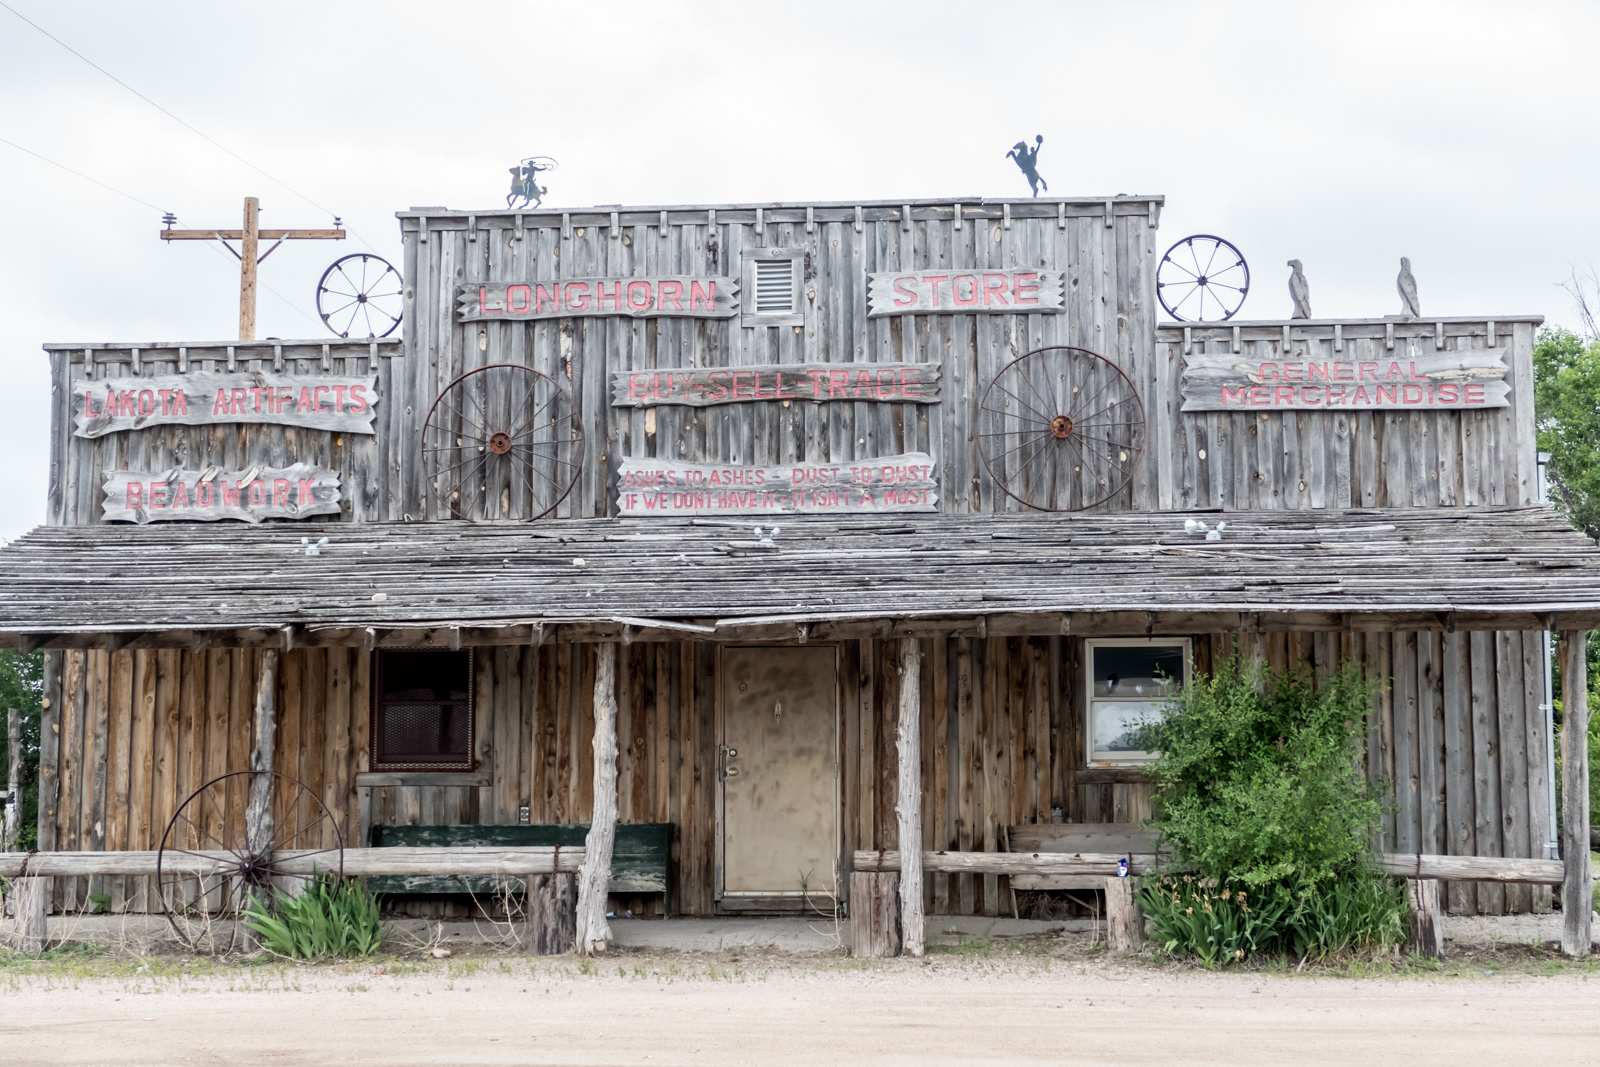 A tourist site in the 'town' of Scenic, SD